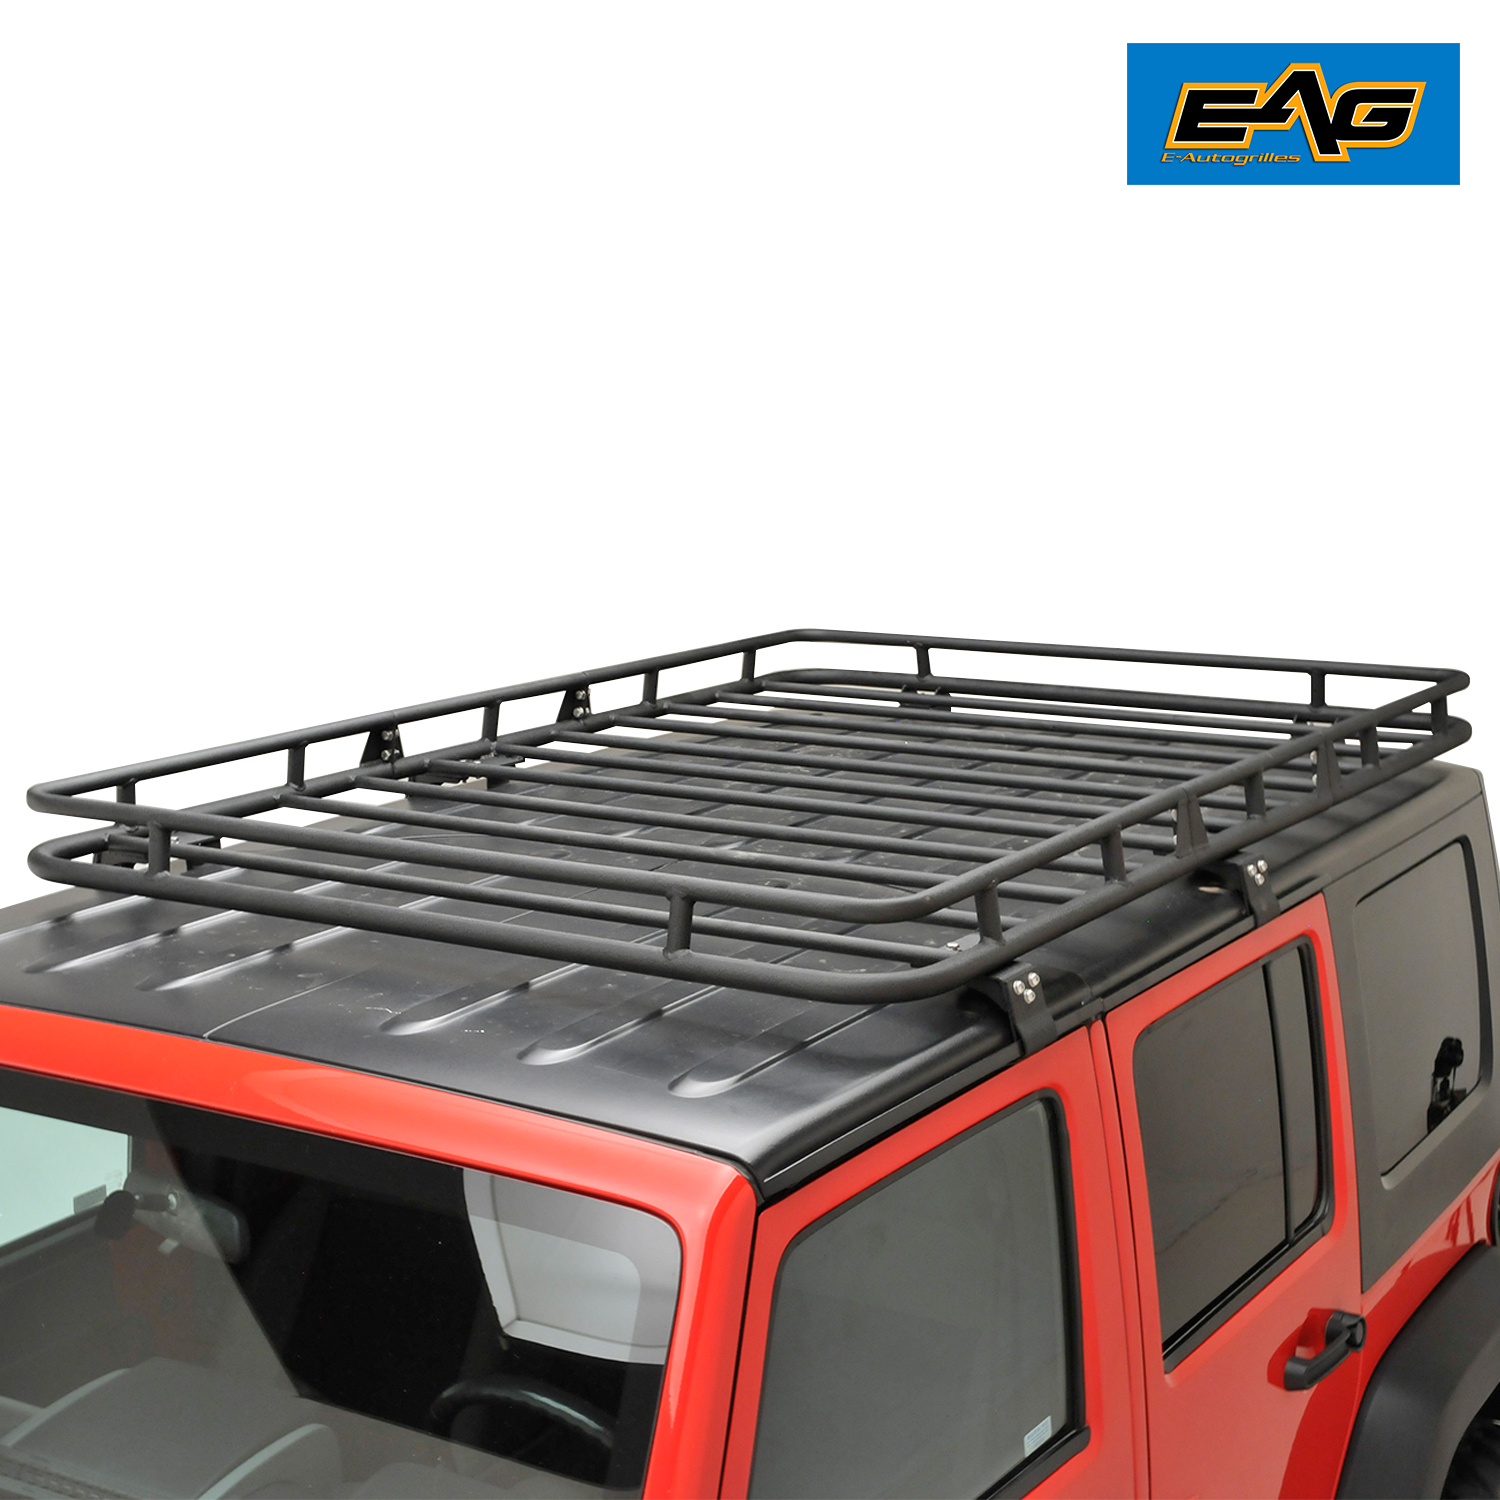 Eag Black Steel Roof Rack Cargo Basket For 07 17 Jeep